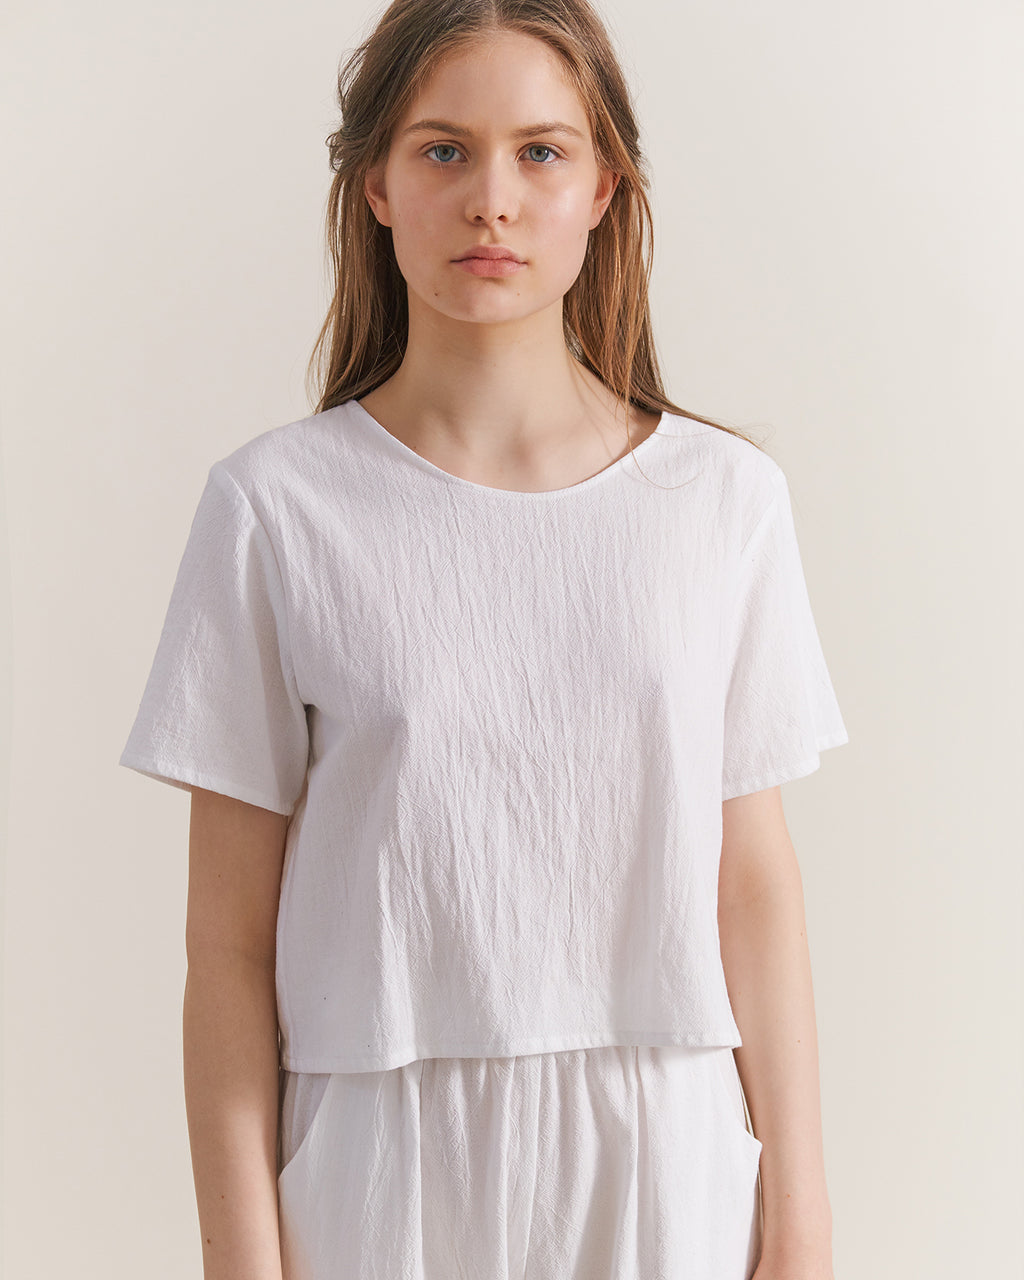 Clio Top / Cotton